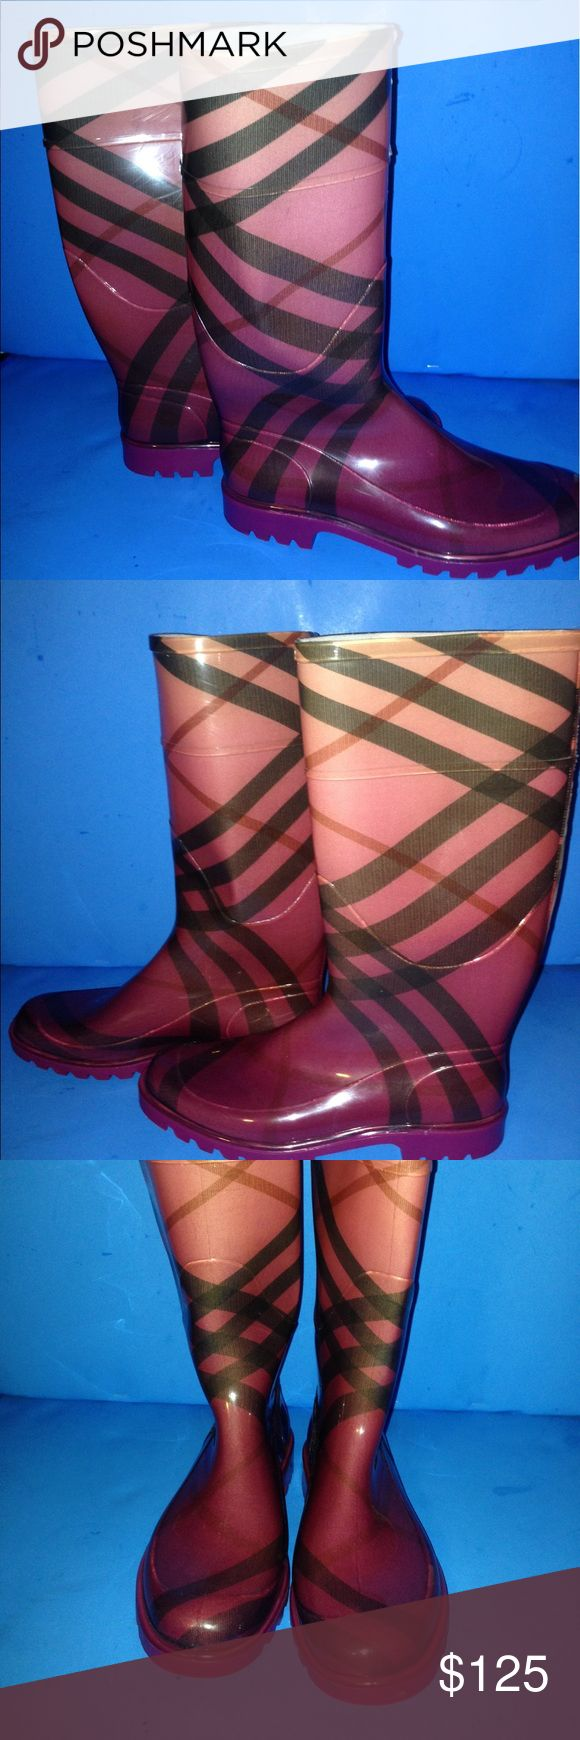 """BURBERRY PINK RUBBER RAIN BOOT SIZE 9 DESCRIPTION Pink House Check Rubber Rain Boots Size 39**Size. 8.5 in the U.S/ Please know your size in this style as this designer tends to run small**  Heel 1"""" Shaft measurement 13"""" Calf circumference 15"""" Pull on used in good condition Burberry Shoes Winter & Rain Boots"""